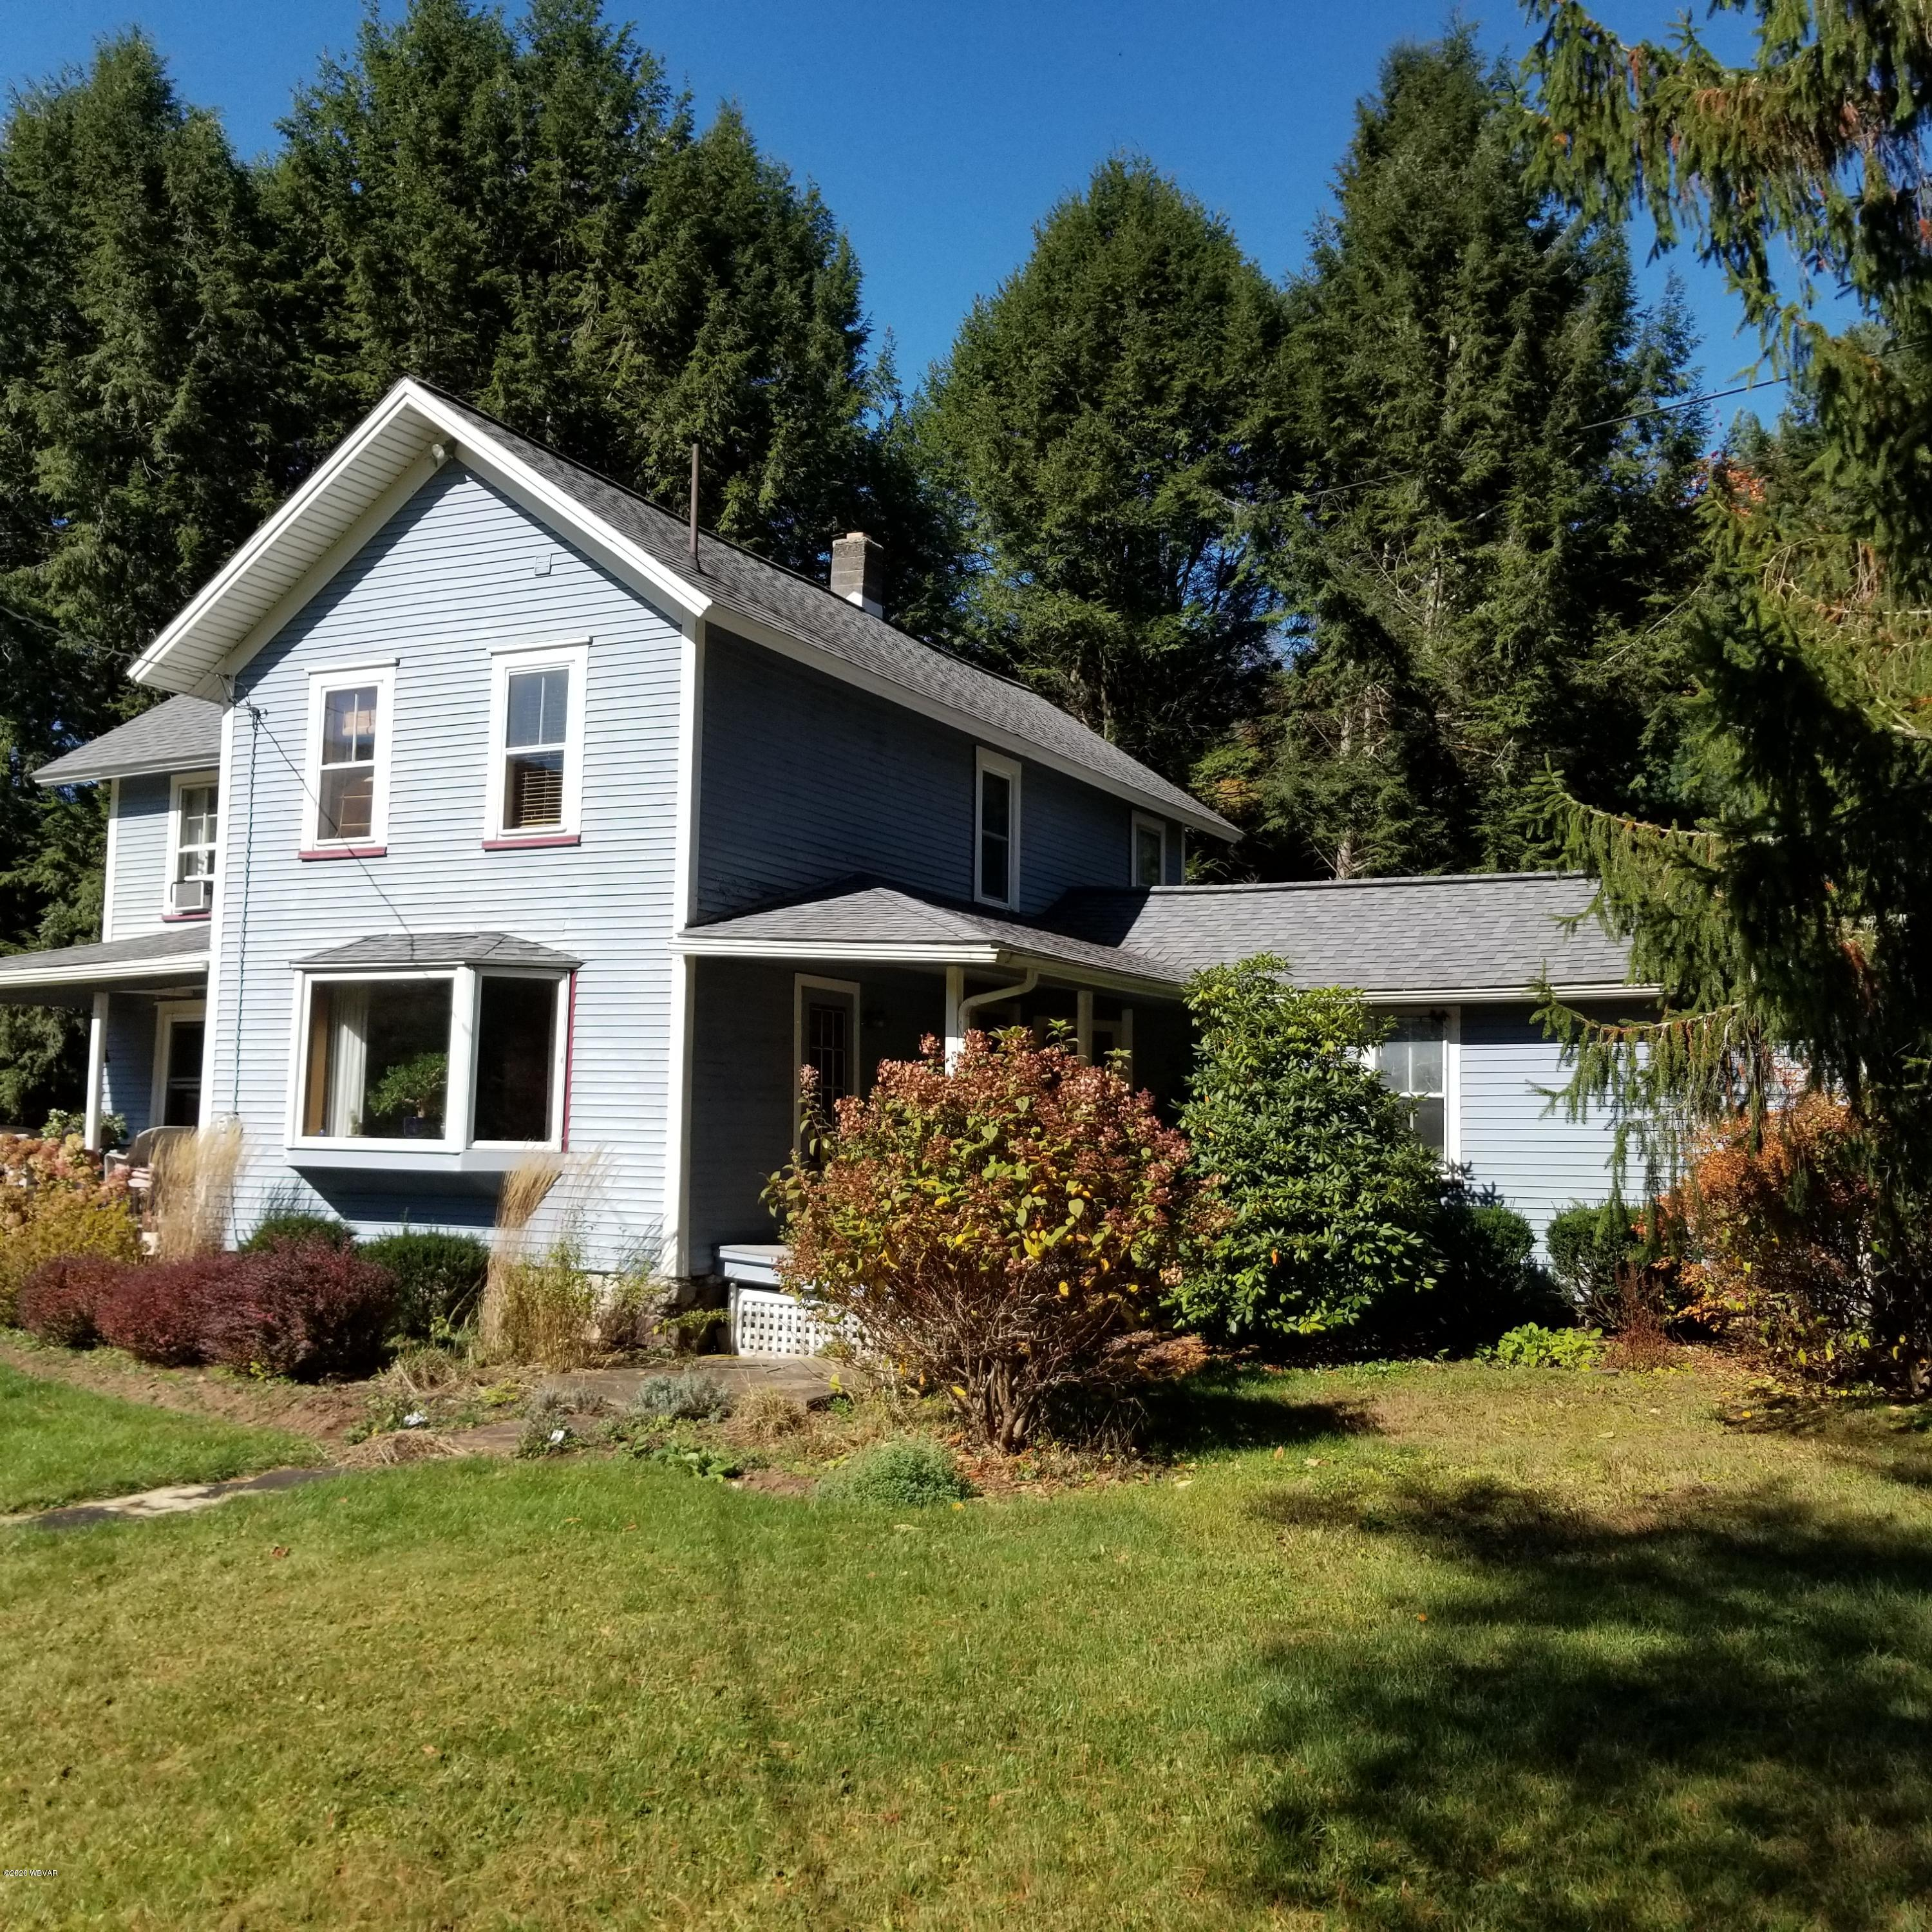 6790 PA-154 HIGHWAY, Forksville, PA 18616, 3 Bedrooms Bedrooms, ,1.25 BathroomsBathrooms,Residential,For sale,PA-154,WB-91346